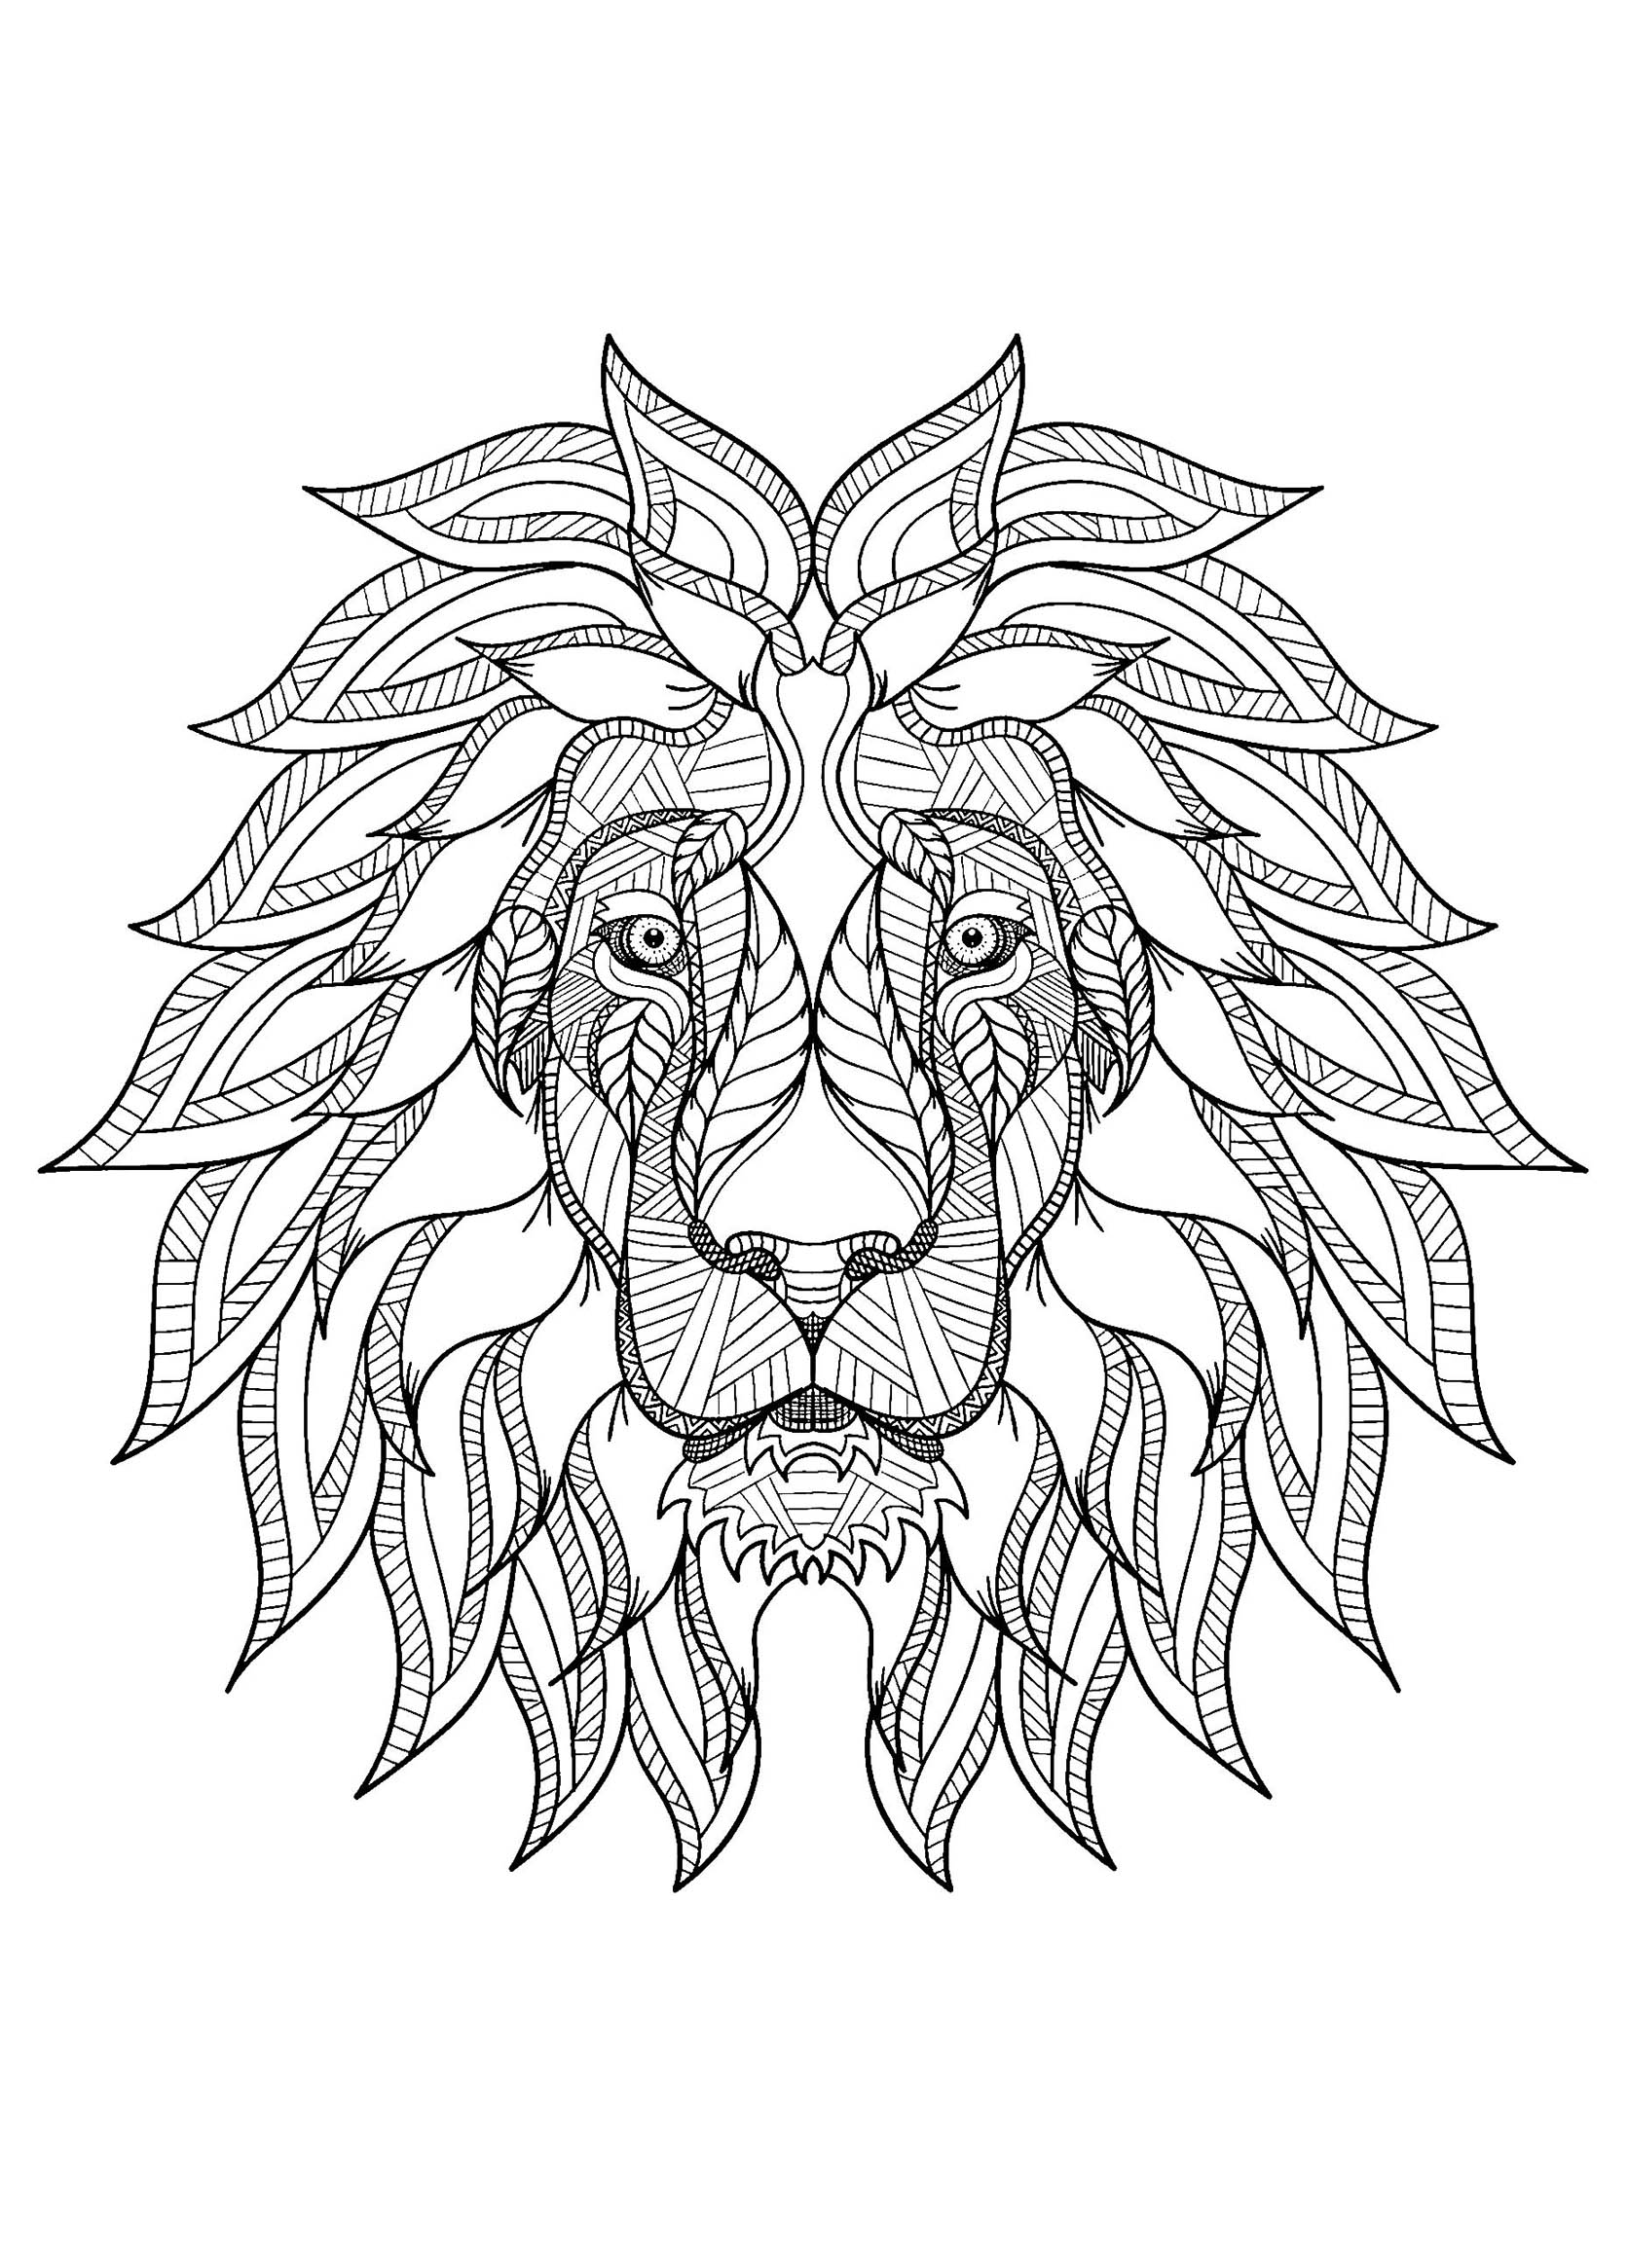 Lion Free To Color For Children Lion Kids Coloring Pages